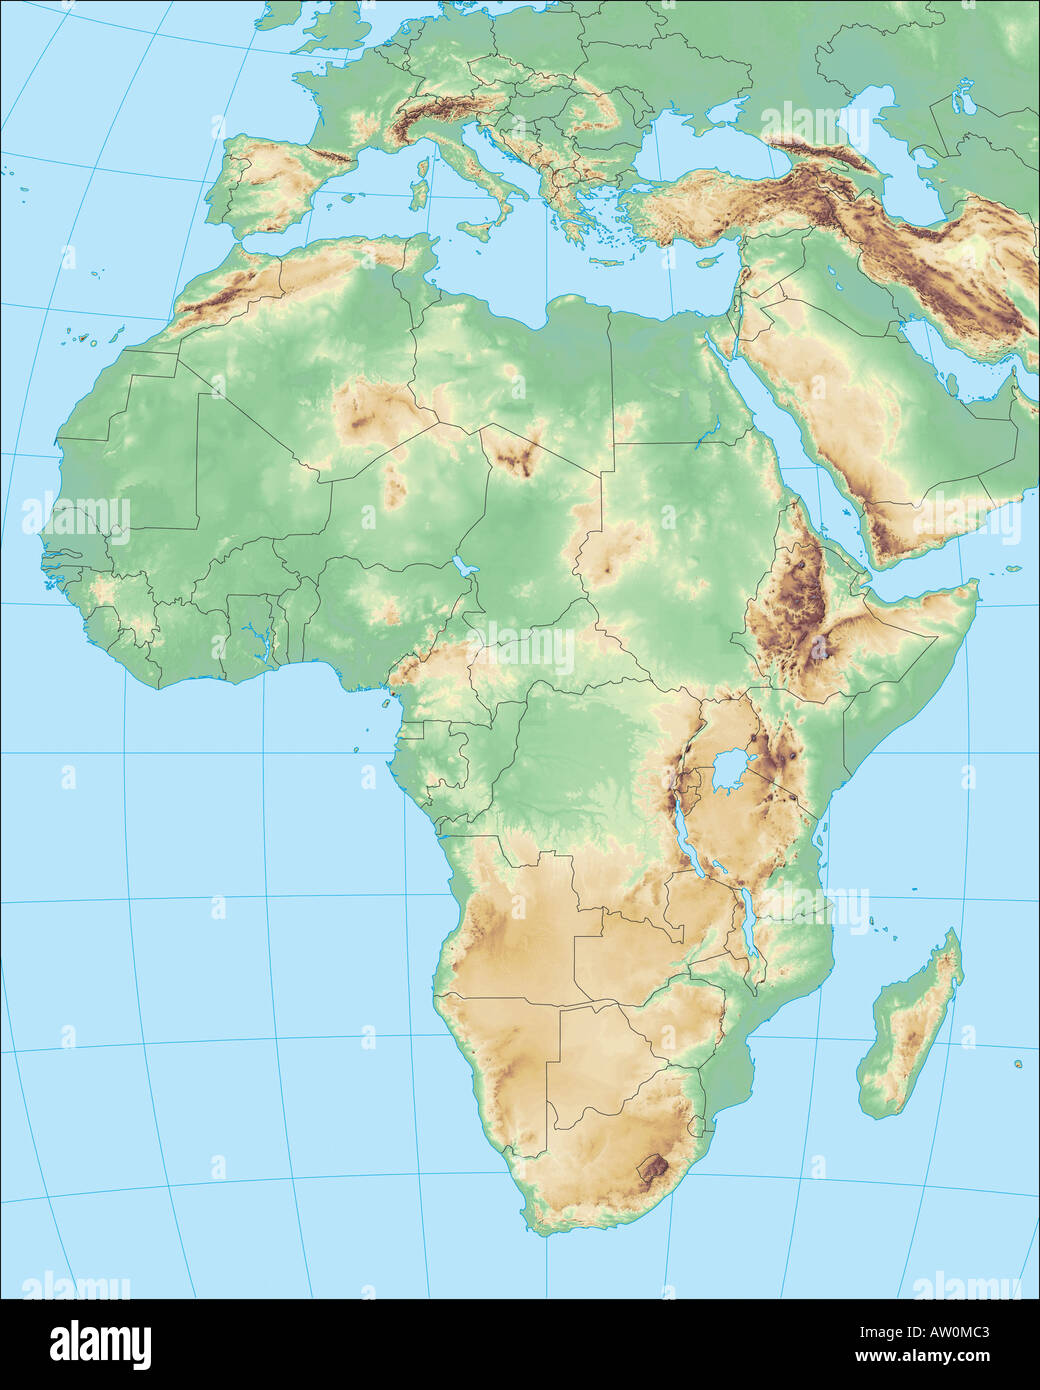 Africa Map Geography.Africa Region Color Map Maps Geographic Geography Stock Photos